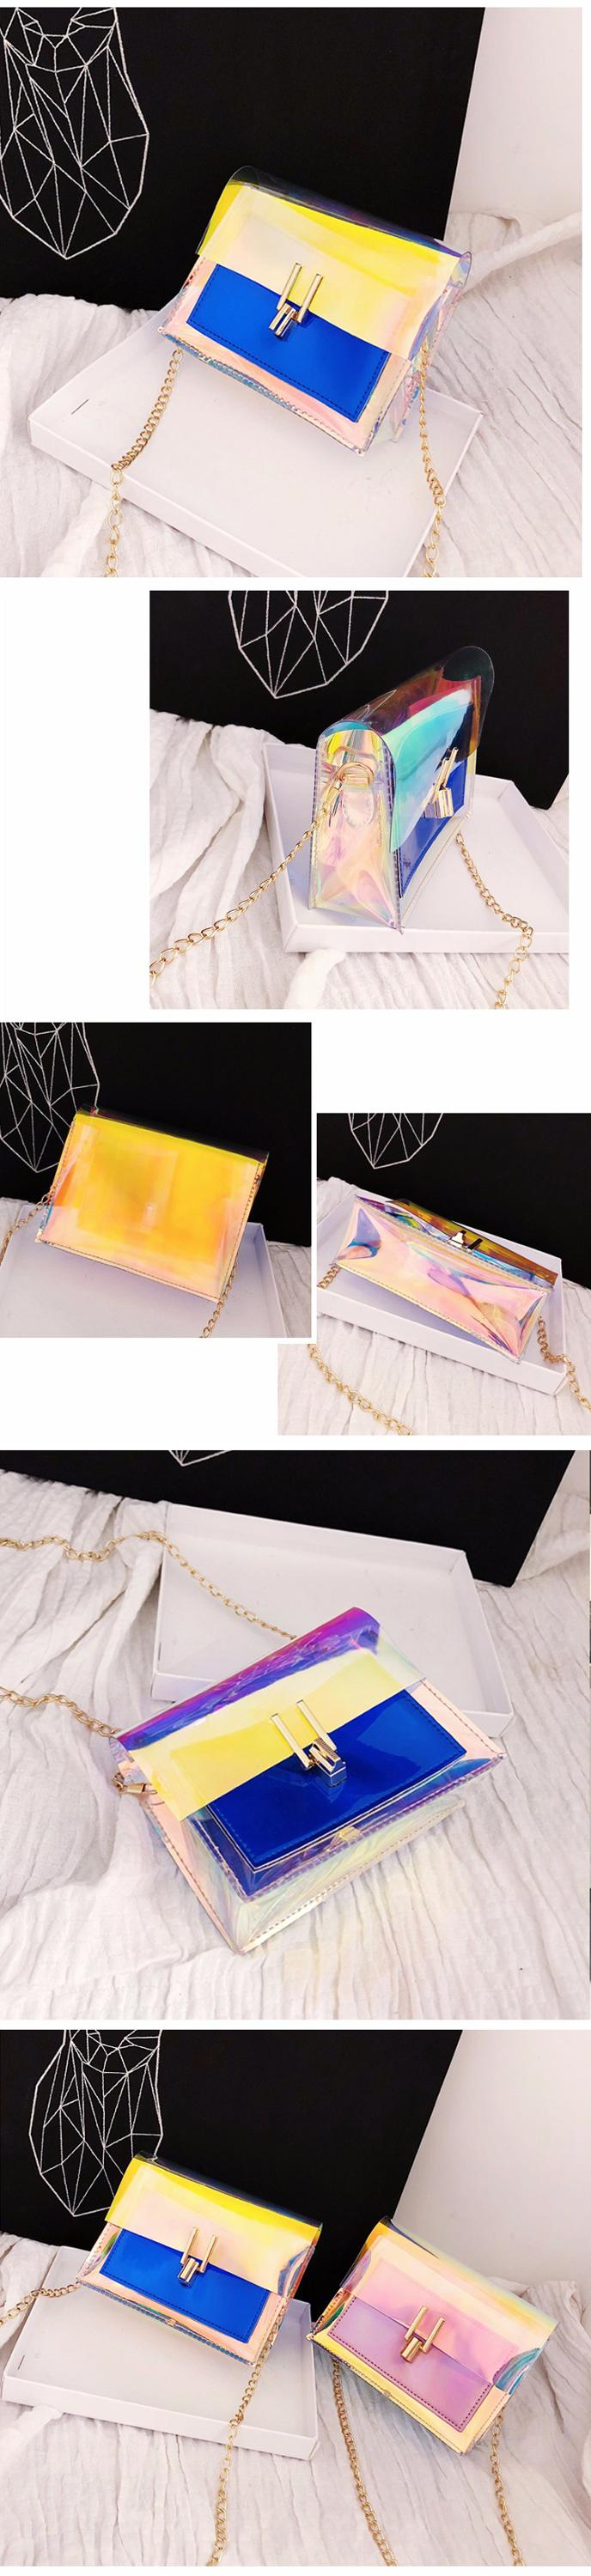 Wholesale colorful transparent pvc neon chain purses bags jelly handbags for women